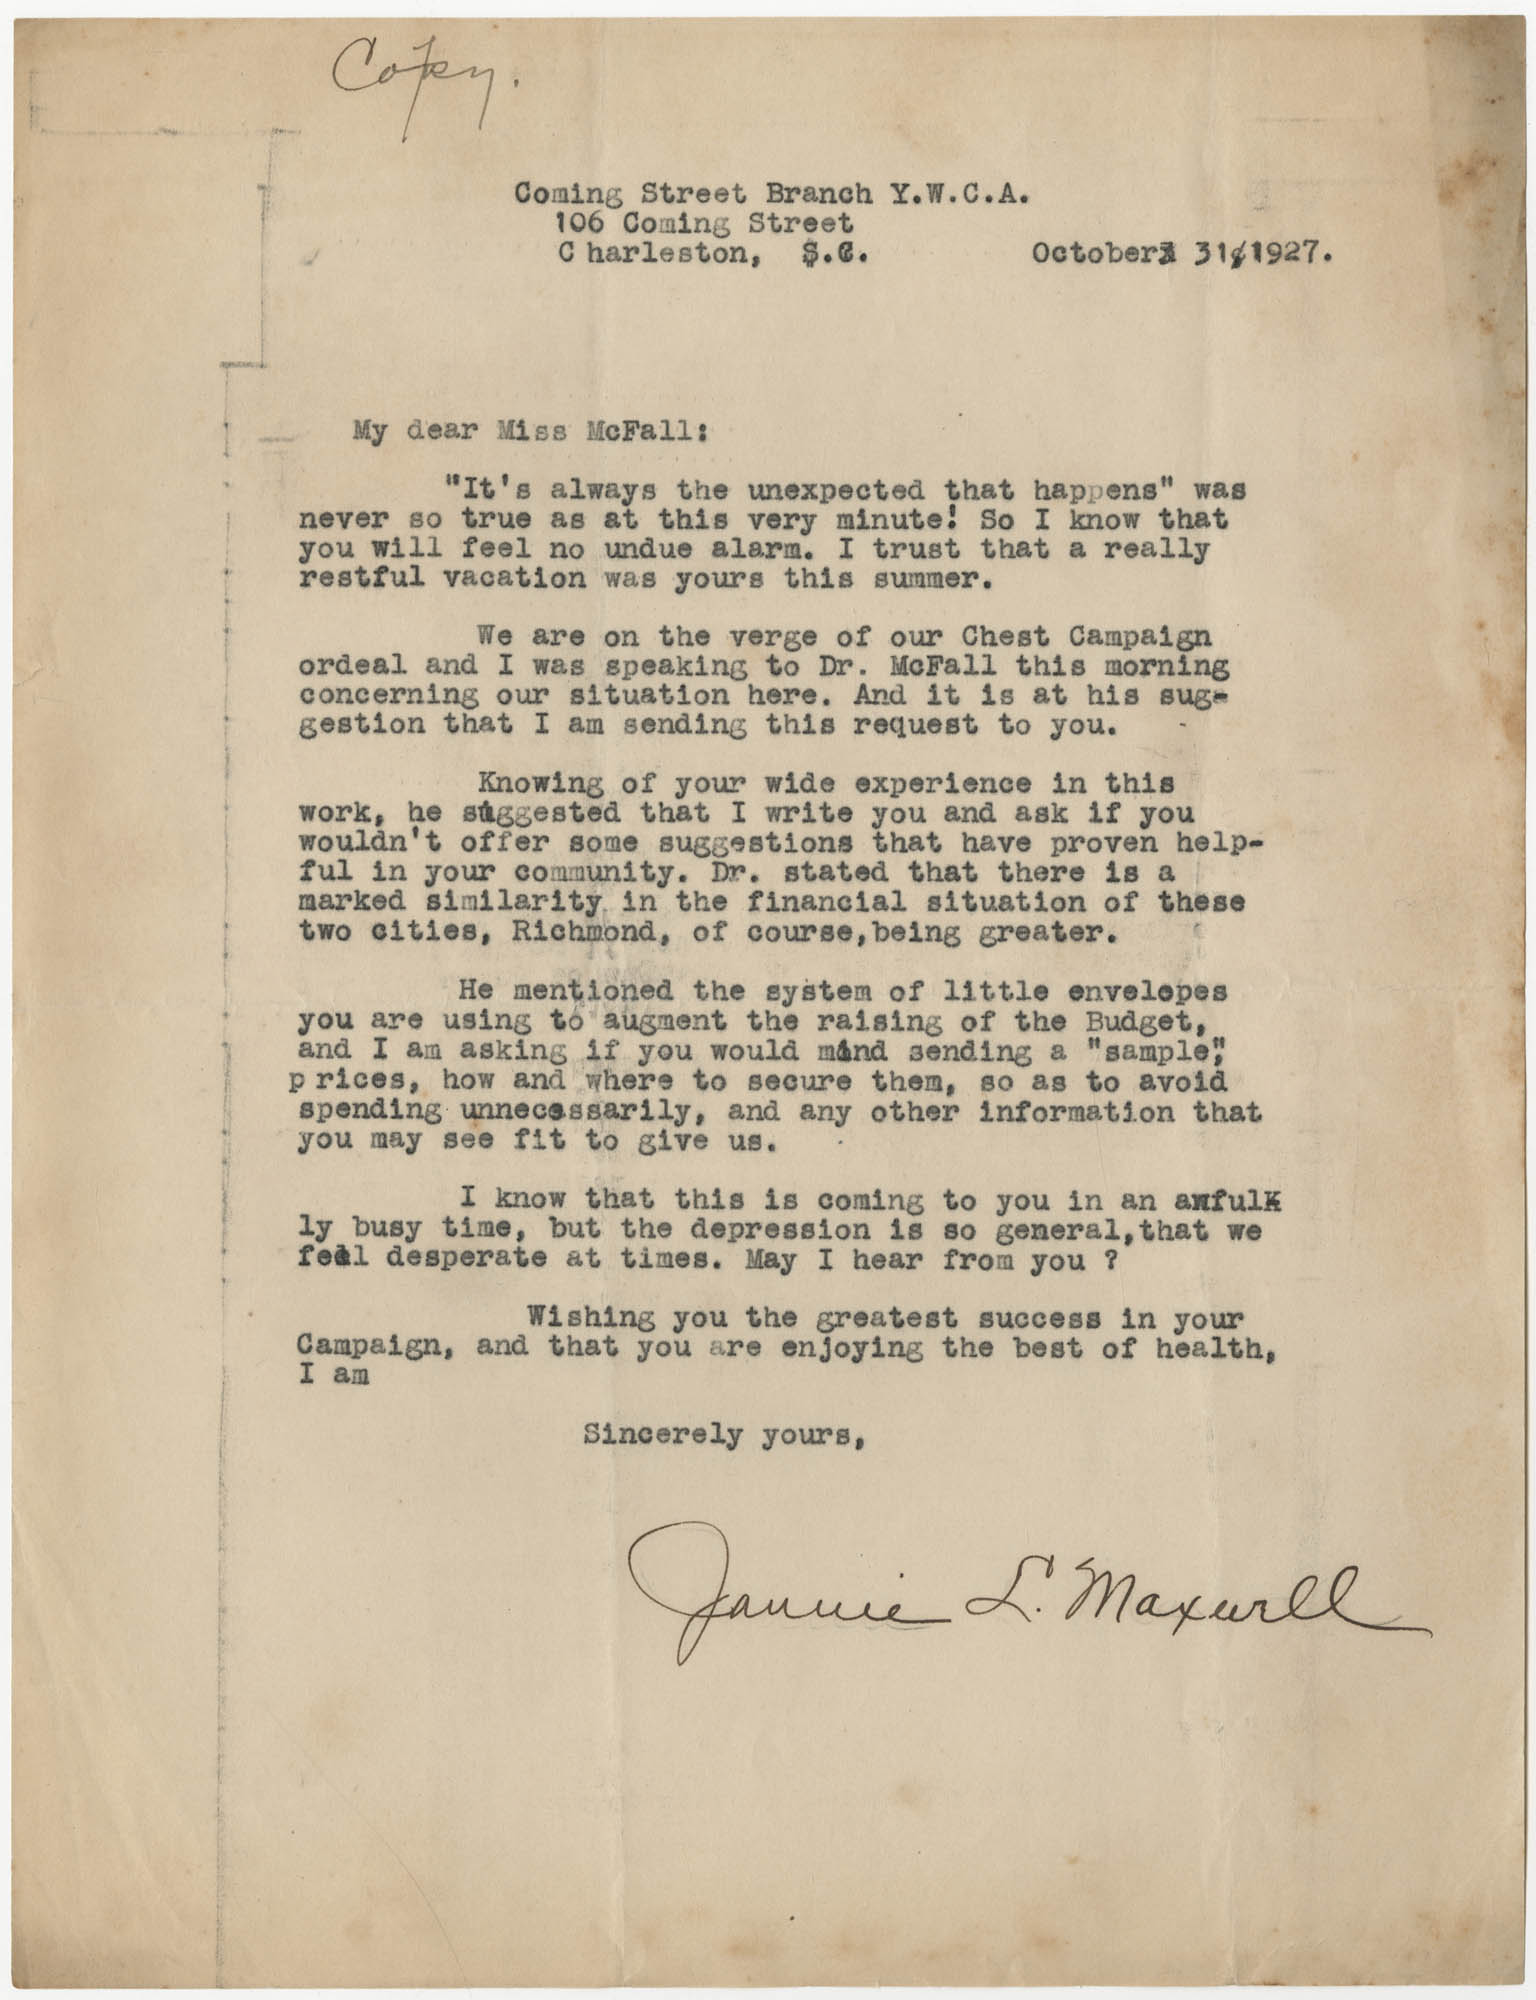 Letter from Jannie L. Maxwell to